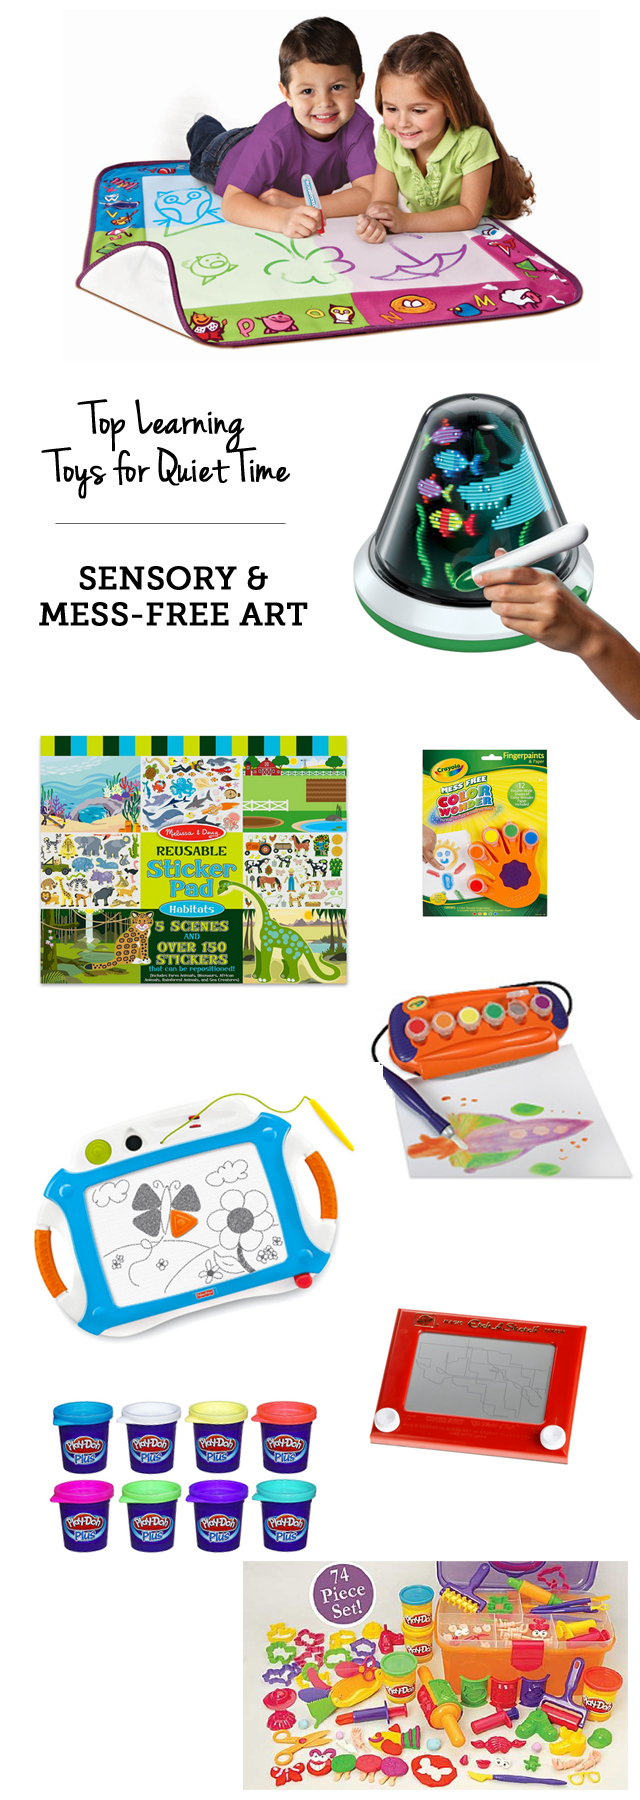 Top Learning Toys For Toddlers : Mpmk gift guide best educational toys for quiet time